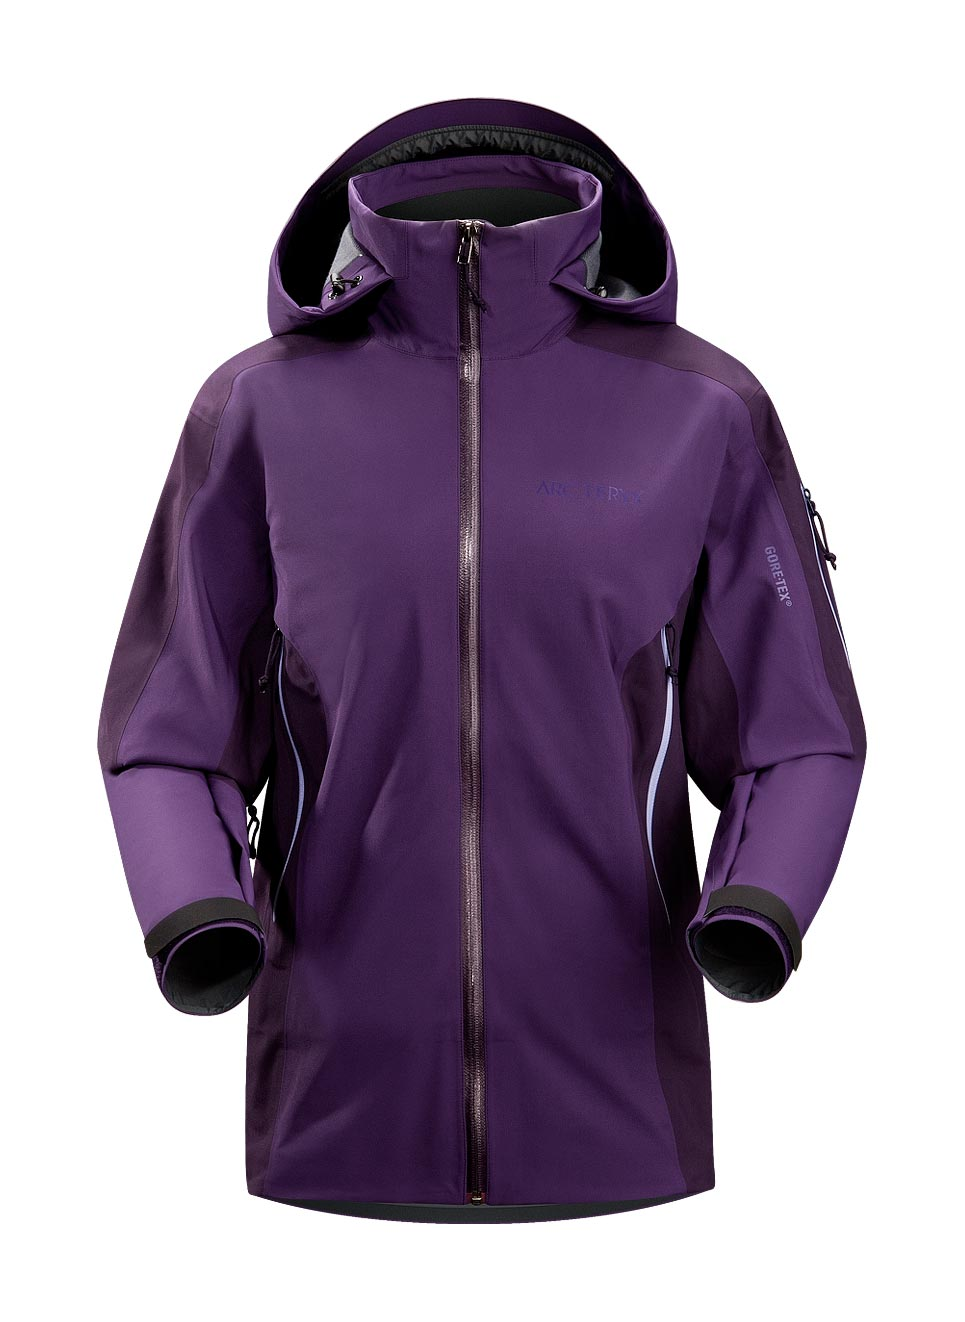 Arcteryx Royale Stingray Jacket